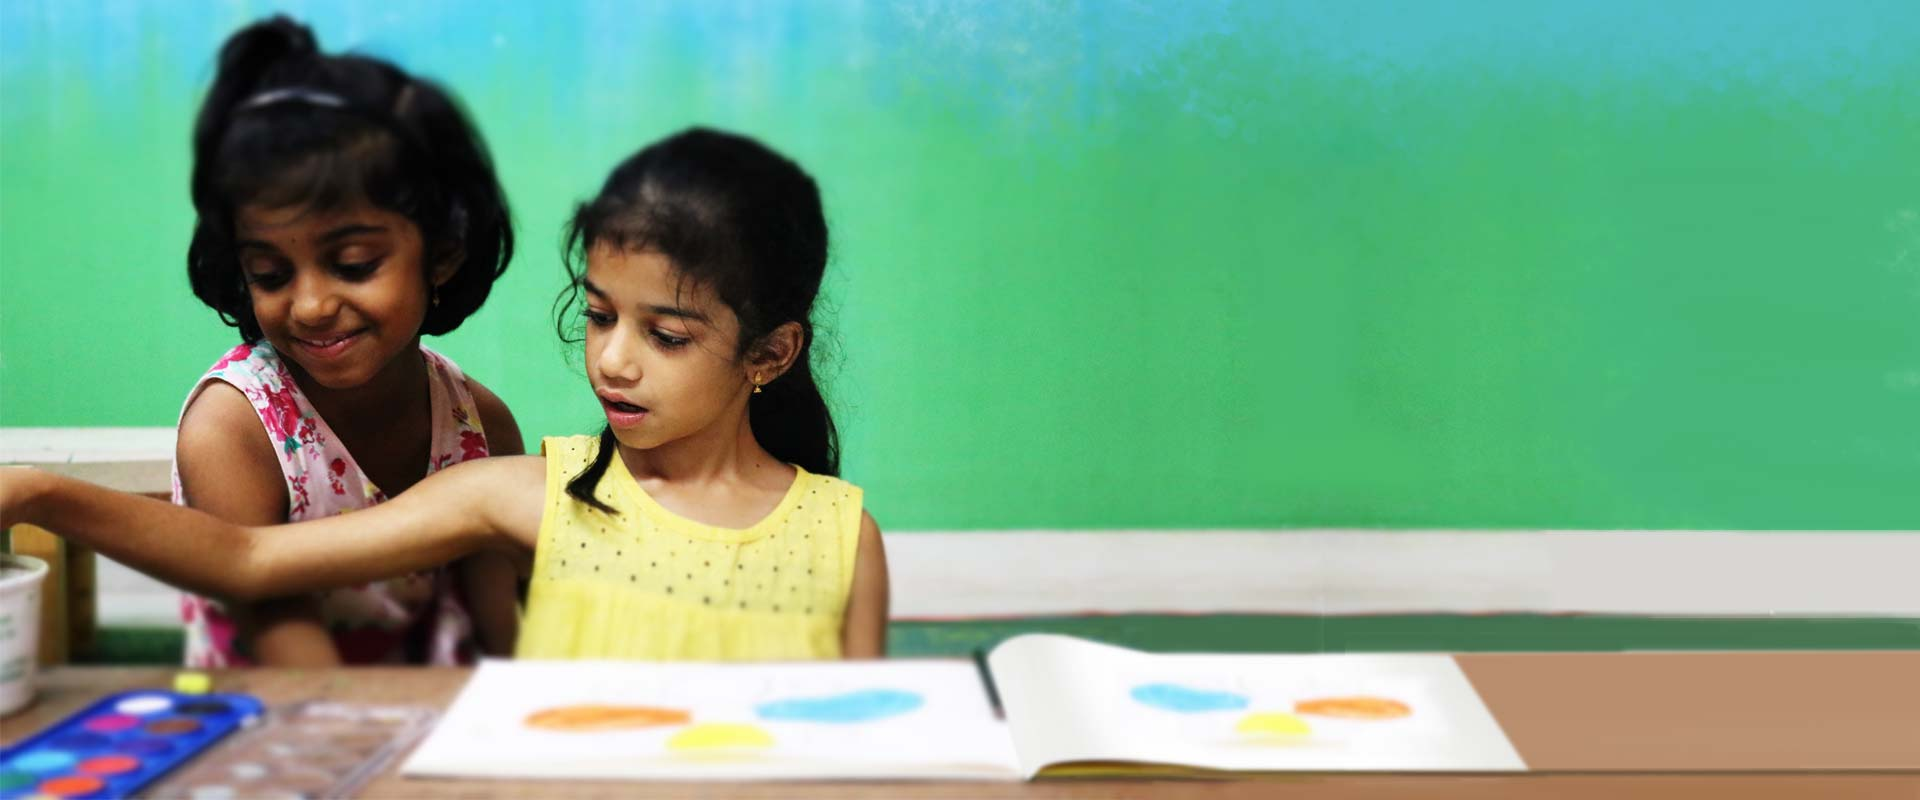 Art Classes For Kids in Jayanagar, Bangalore - Junior Pencil And Chai